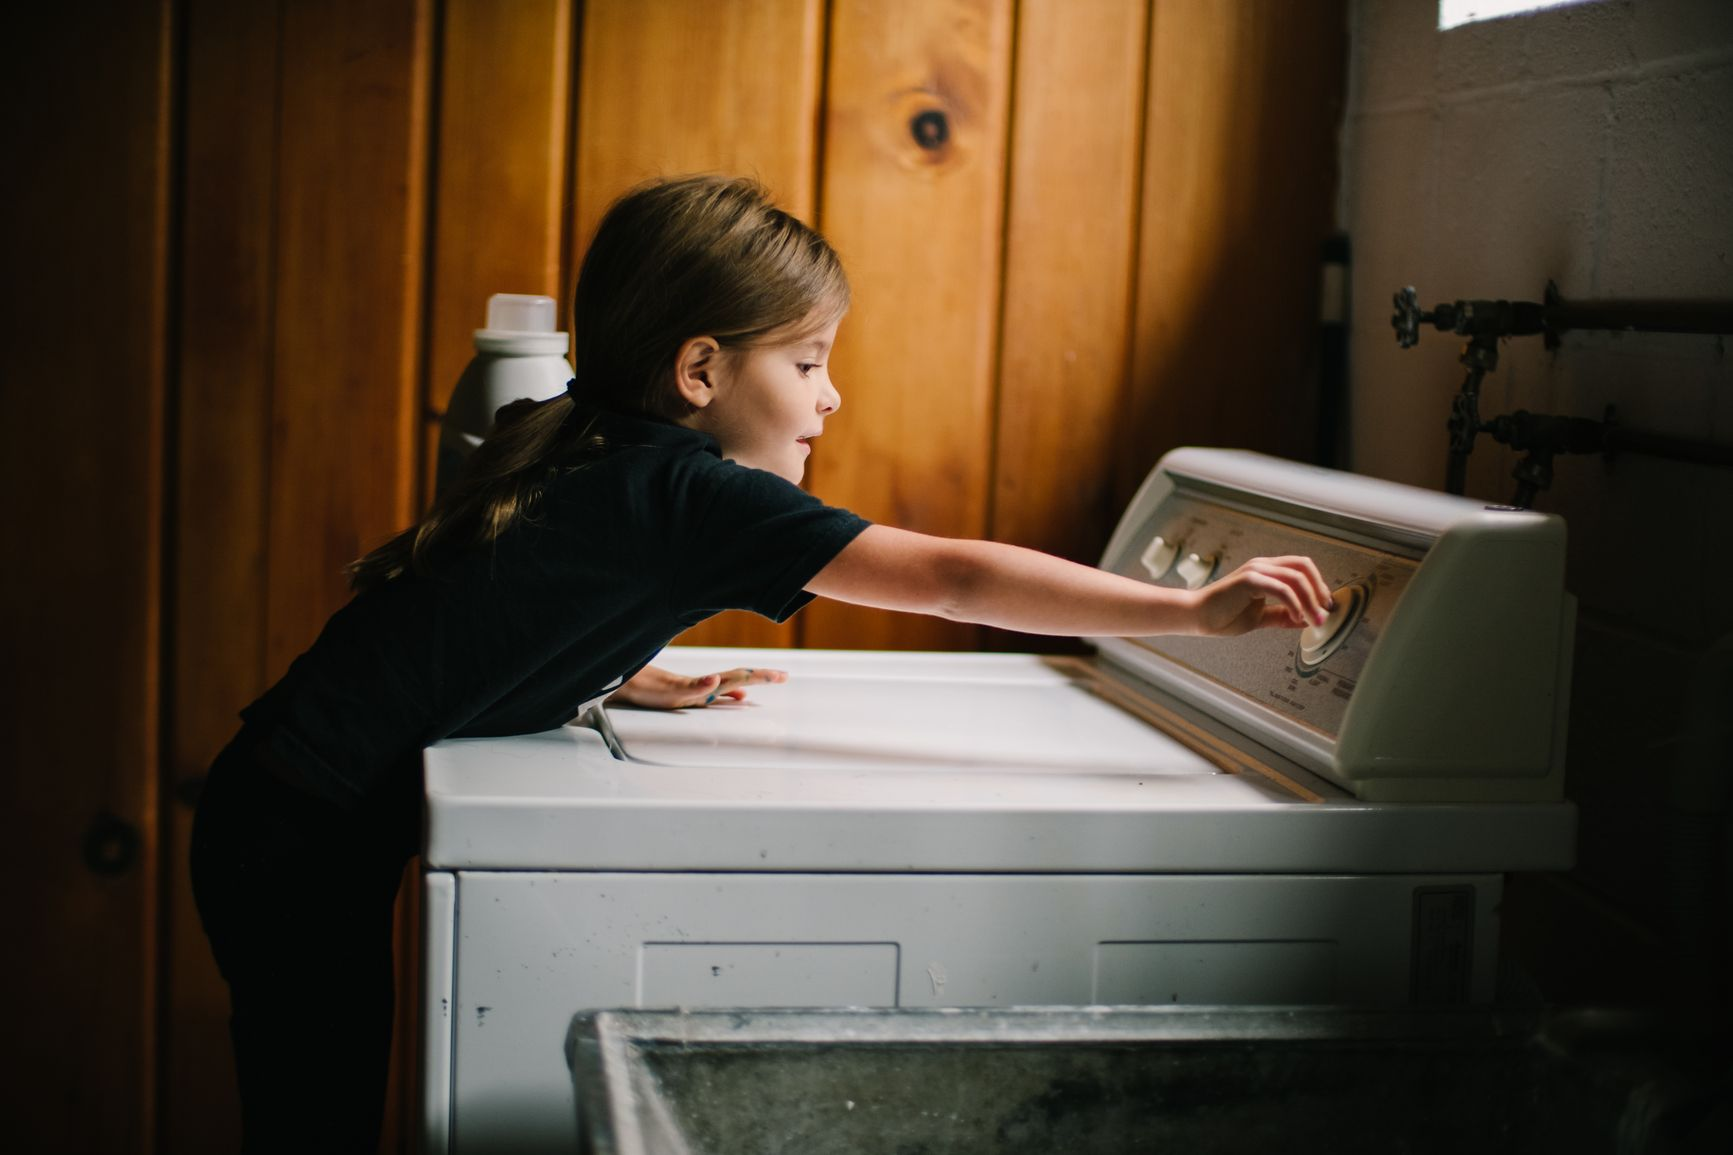 A young girl turns a knob on a washing machine.